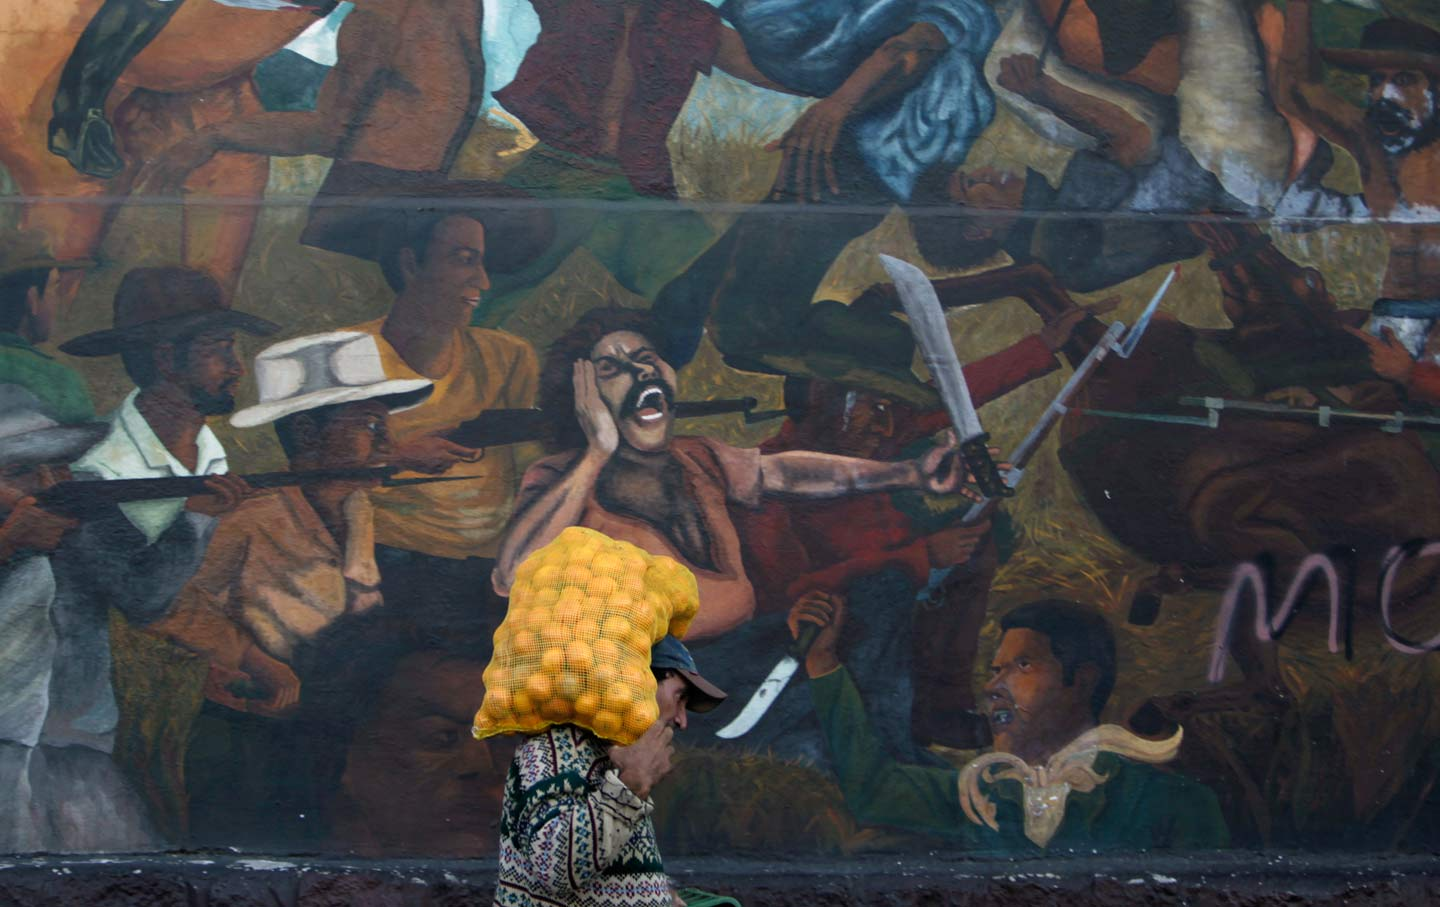 A man carries a sack of oranges while walking past a mural depicting a fight between farmers and private landlords in Tegucigalpa, Honduras's capital.